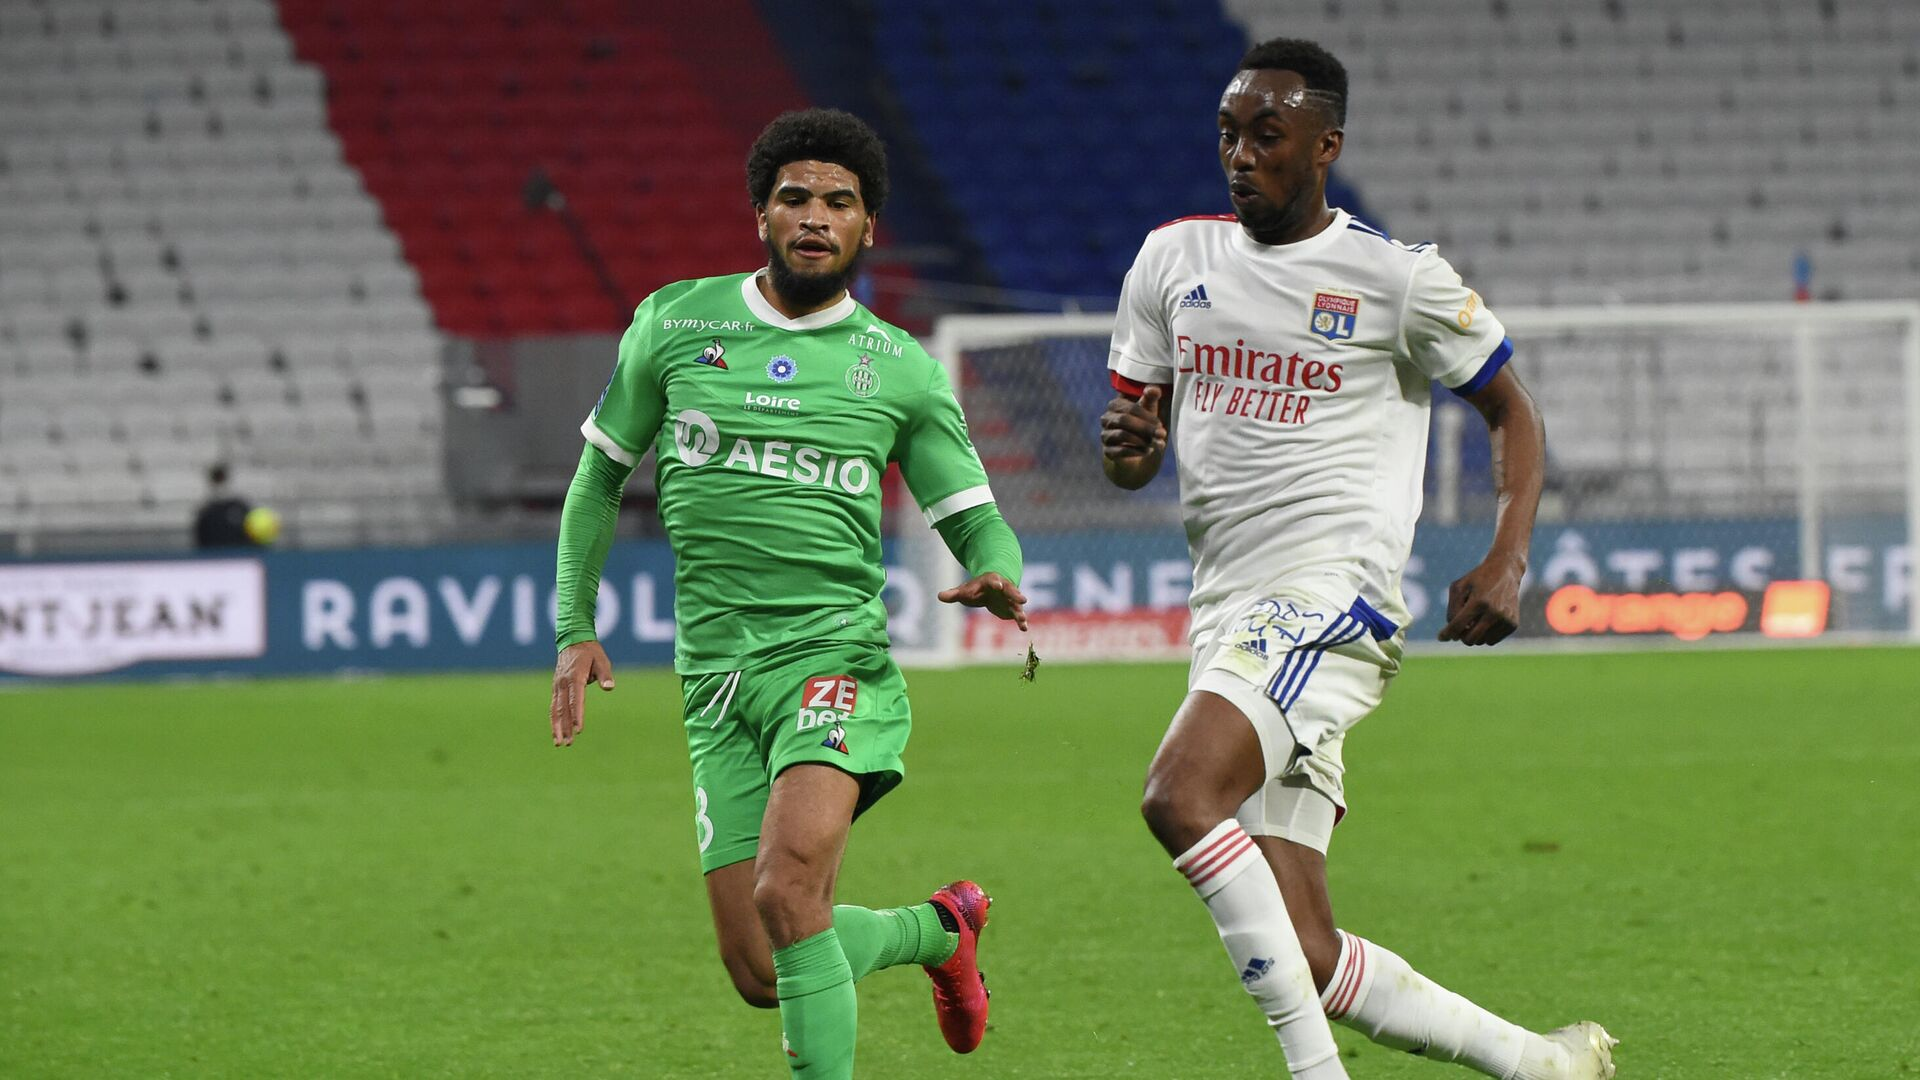 Saint-Etienne's French midfielder Mahdi Camara (L) fights for the ball with Lyon's Zimbabwean forward Tino Kdewere (R) during the French L1 football match between Lyon (OL) and Saint-Etienne (ASSE) on November 8, 2020, at the Groupama stadium in Dйcine-Charpieu near Lyon. (Photo by JEAN-PHILIPPE KSIAZEK / AFP) - РИА Новости, 1920, 09.11.2020